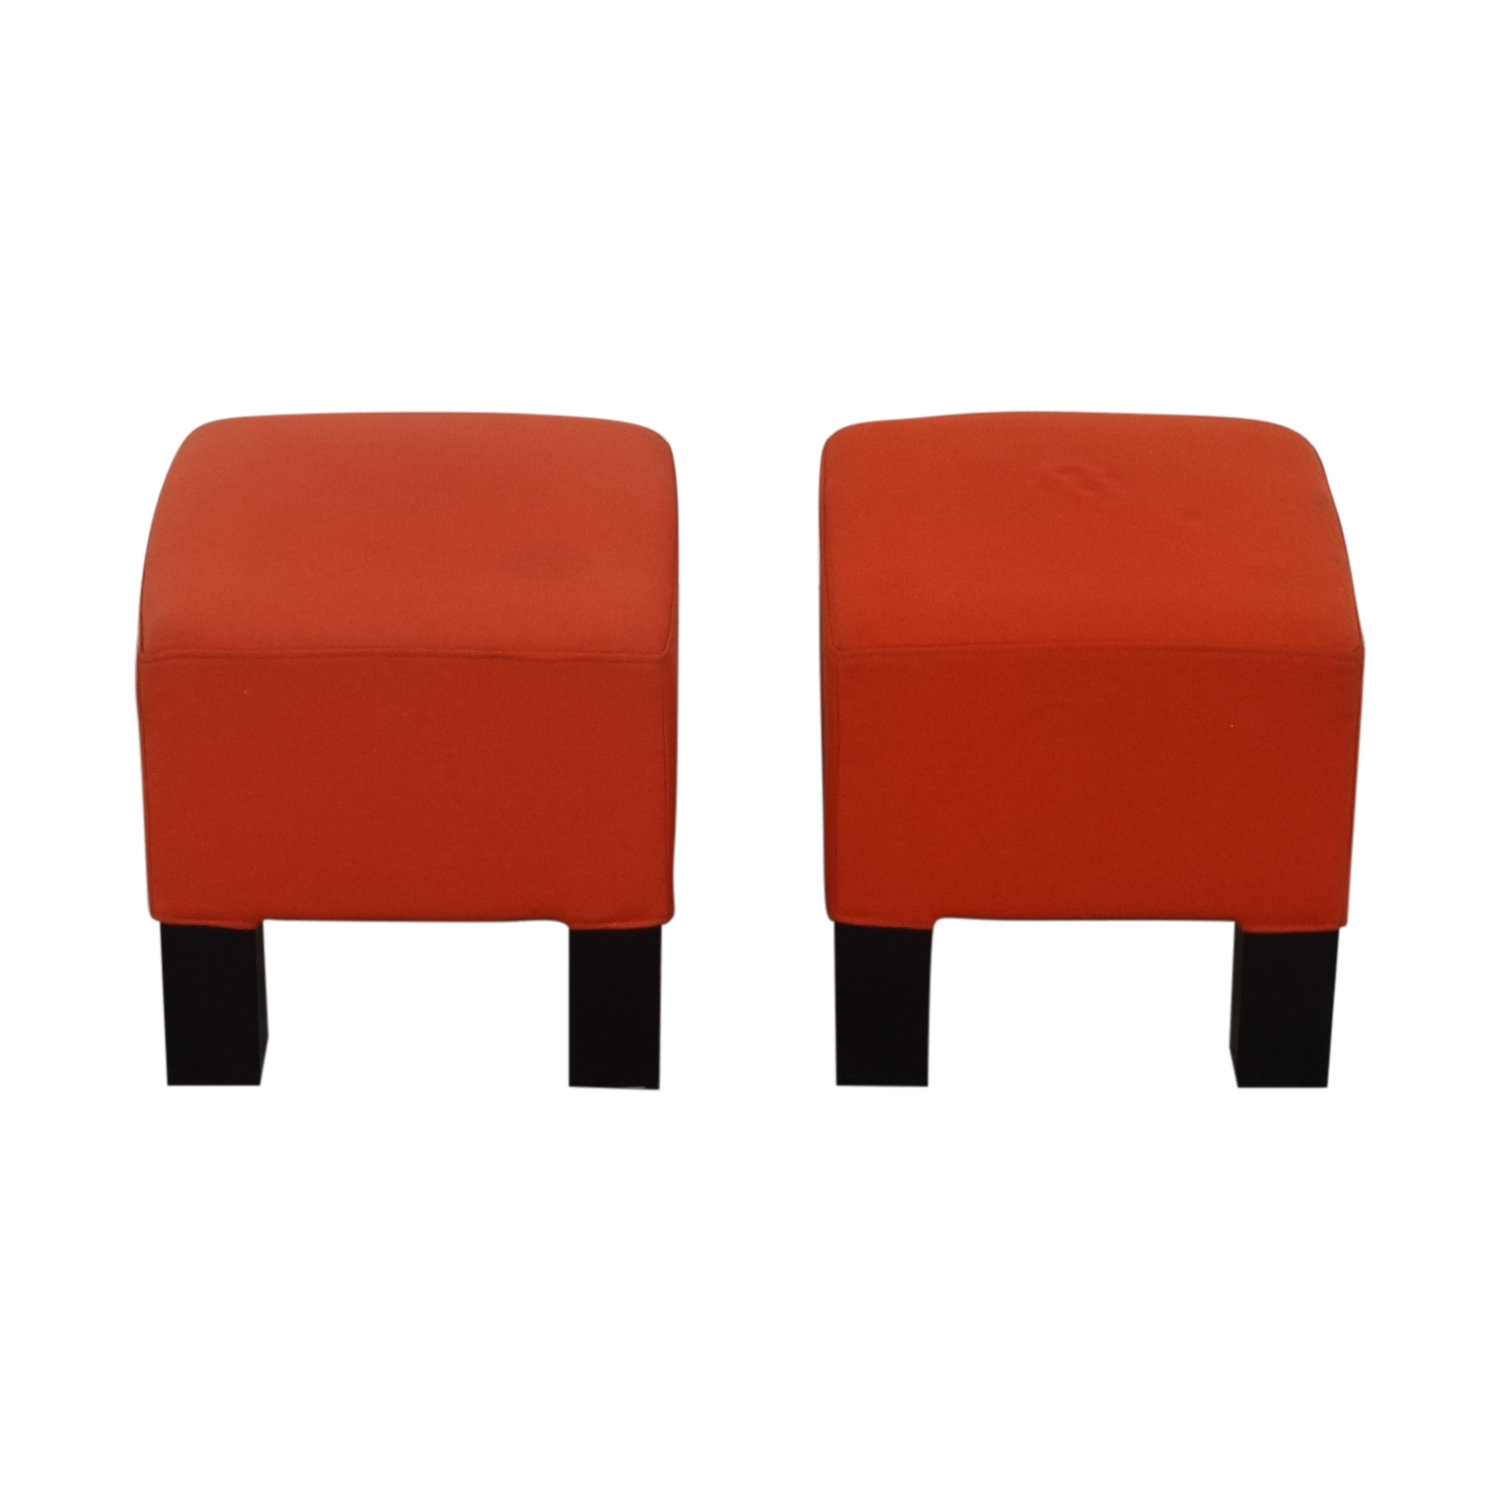 CB2 Orange Ottoman Cubes sale